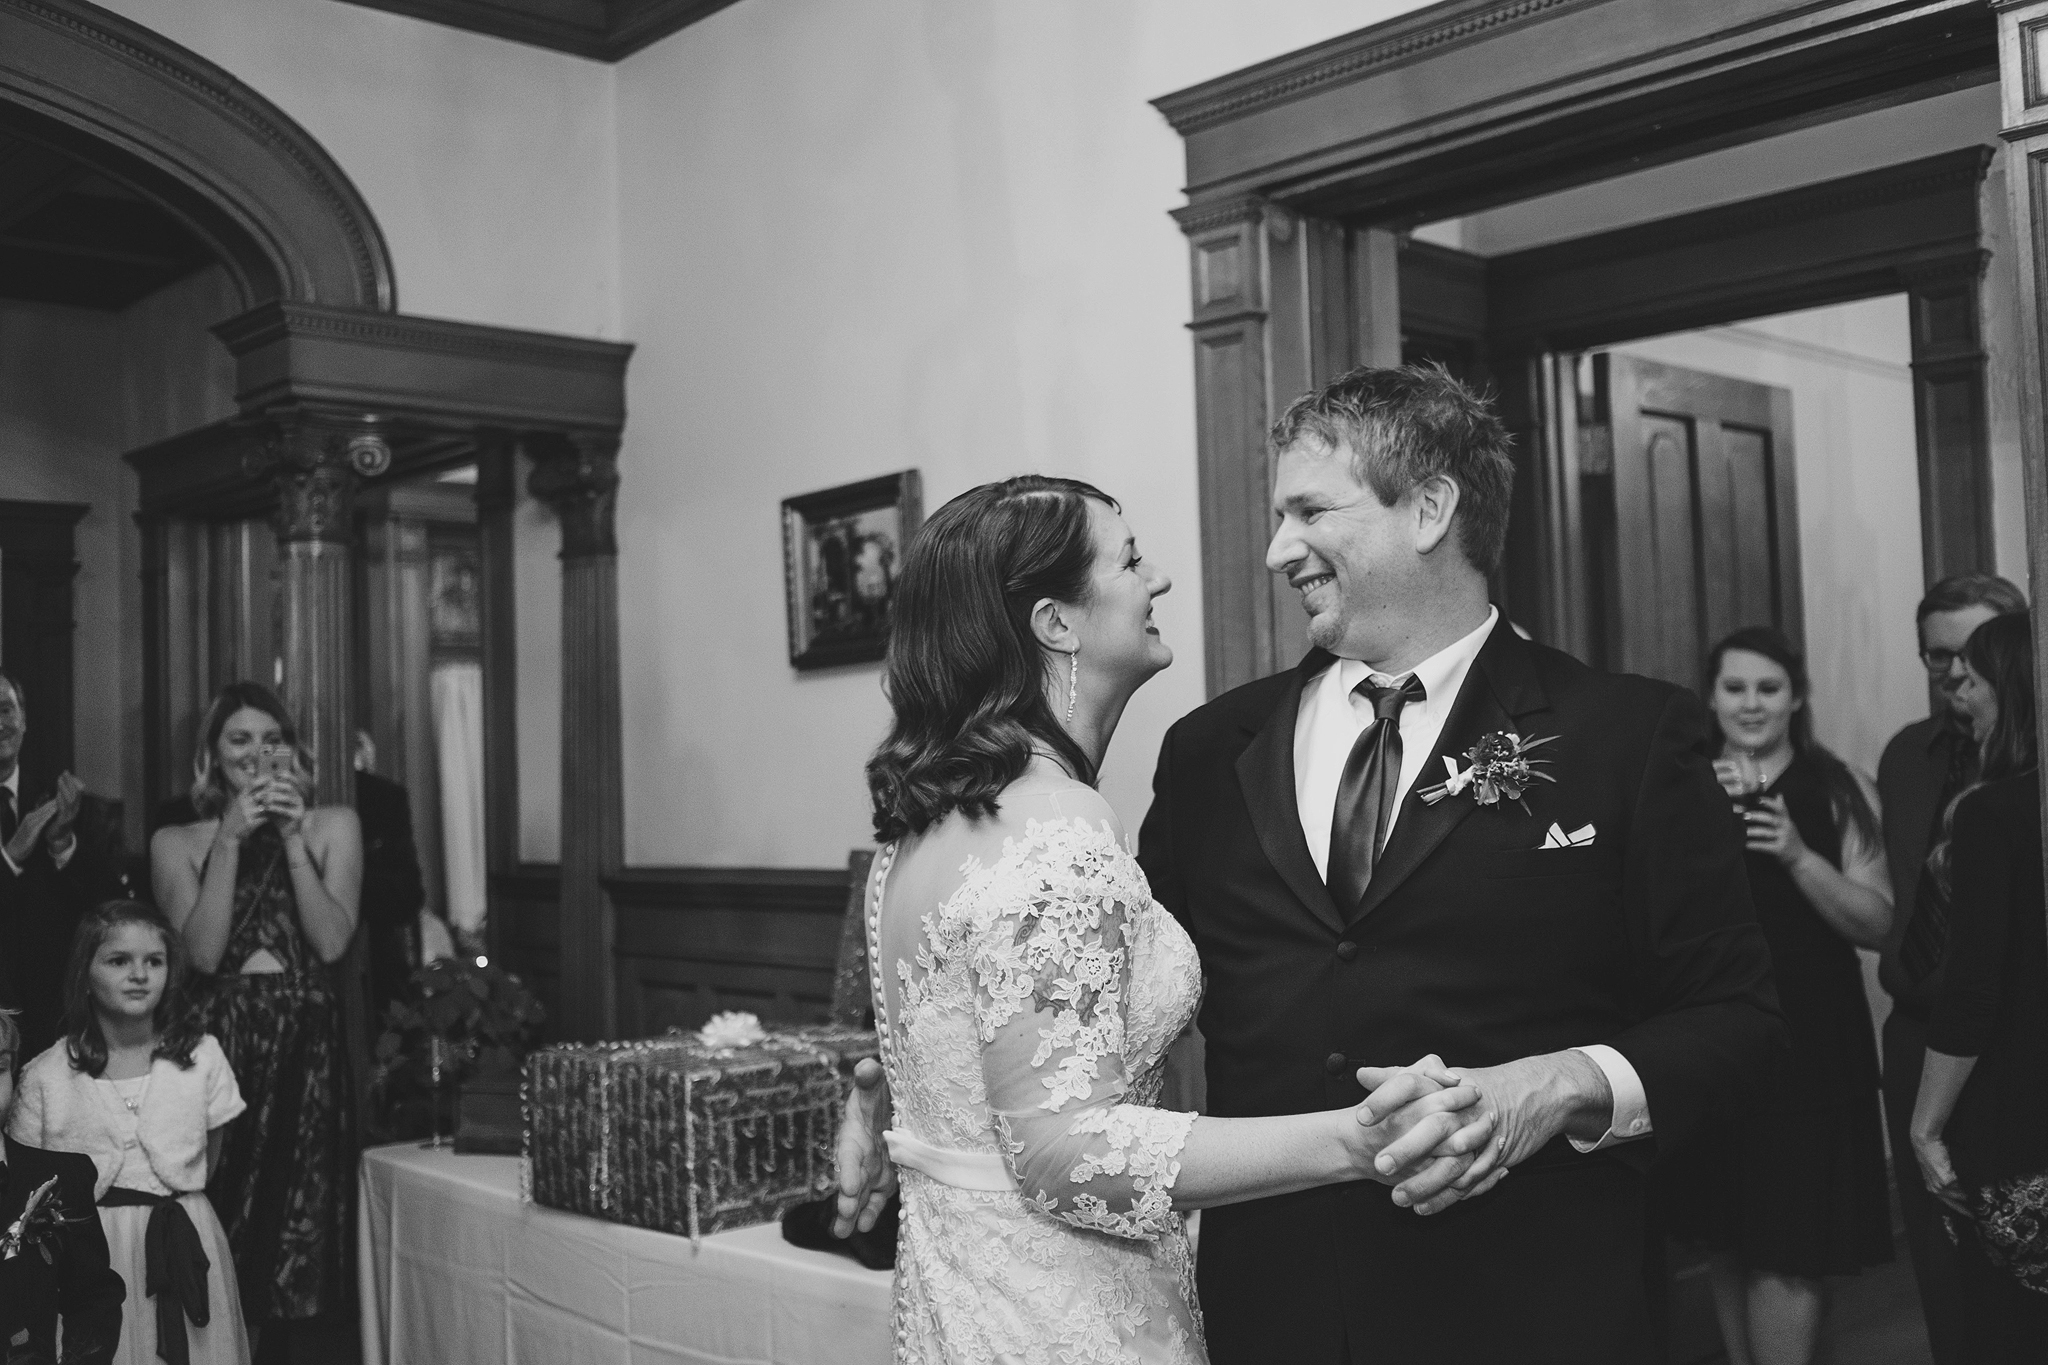 Jenna and Tim - Cincinnati Wedding Photography at Hauck Mansion (71).jpg